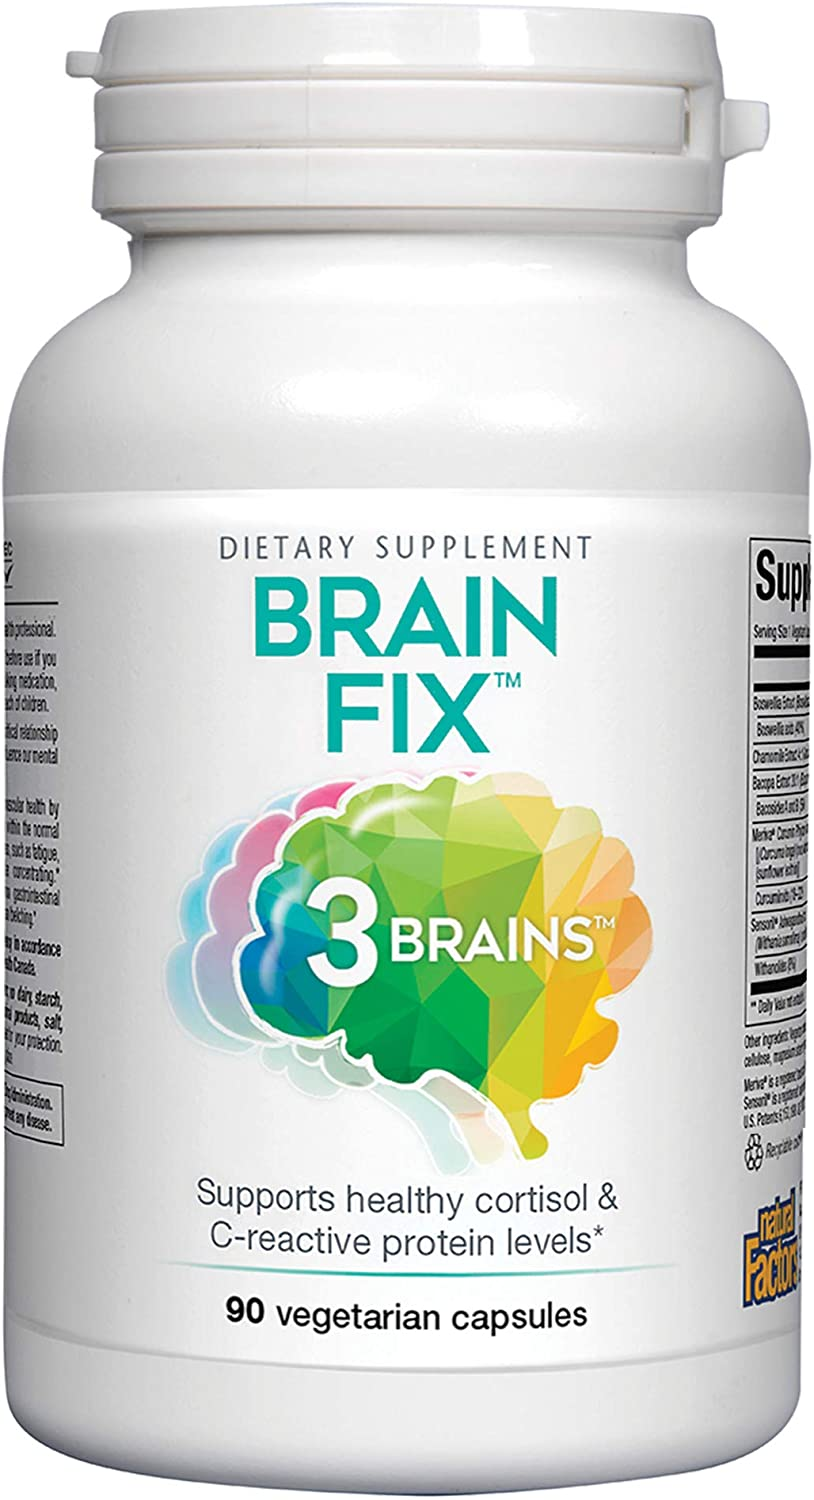 3 Brains by Natural Factors, Brain Fix, Protects The Brain from Cellular Damage, Daily Dietary Supplement, Vegetarian, 90 Capsules 90 Servings